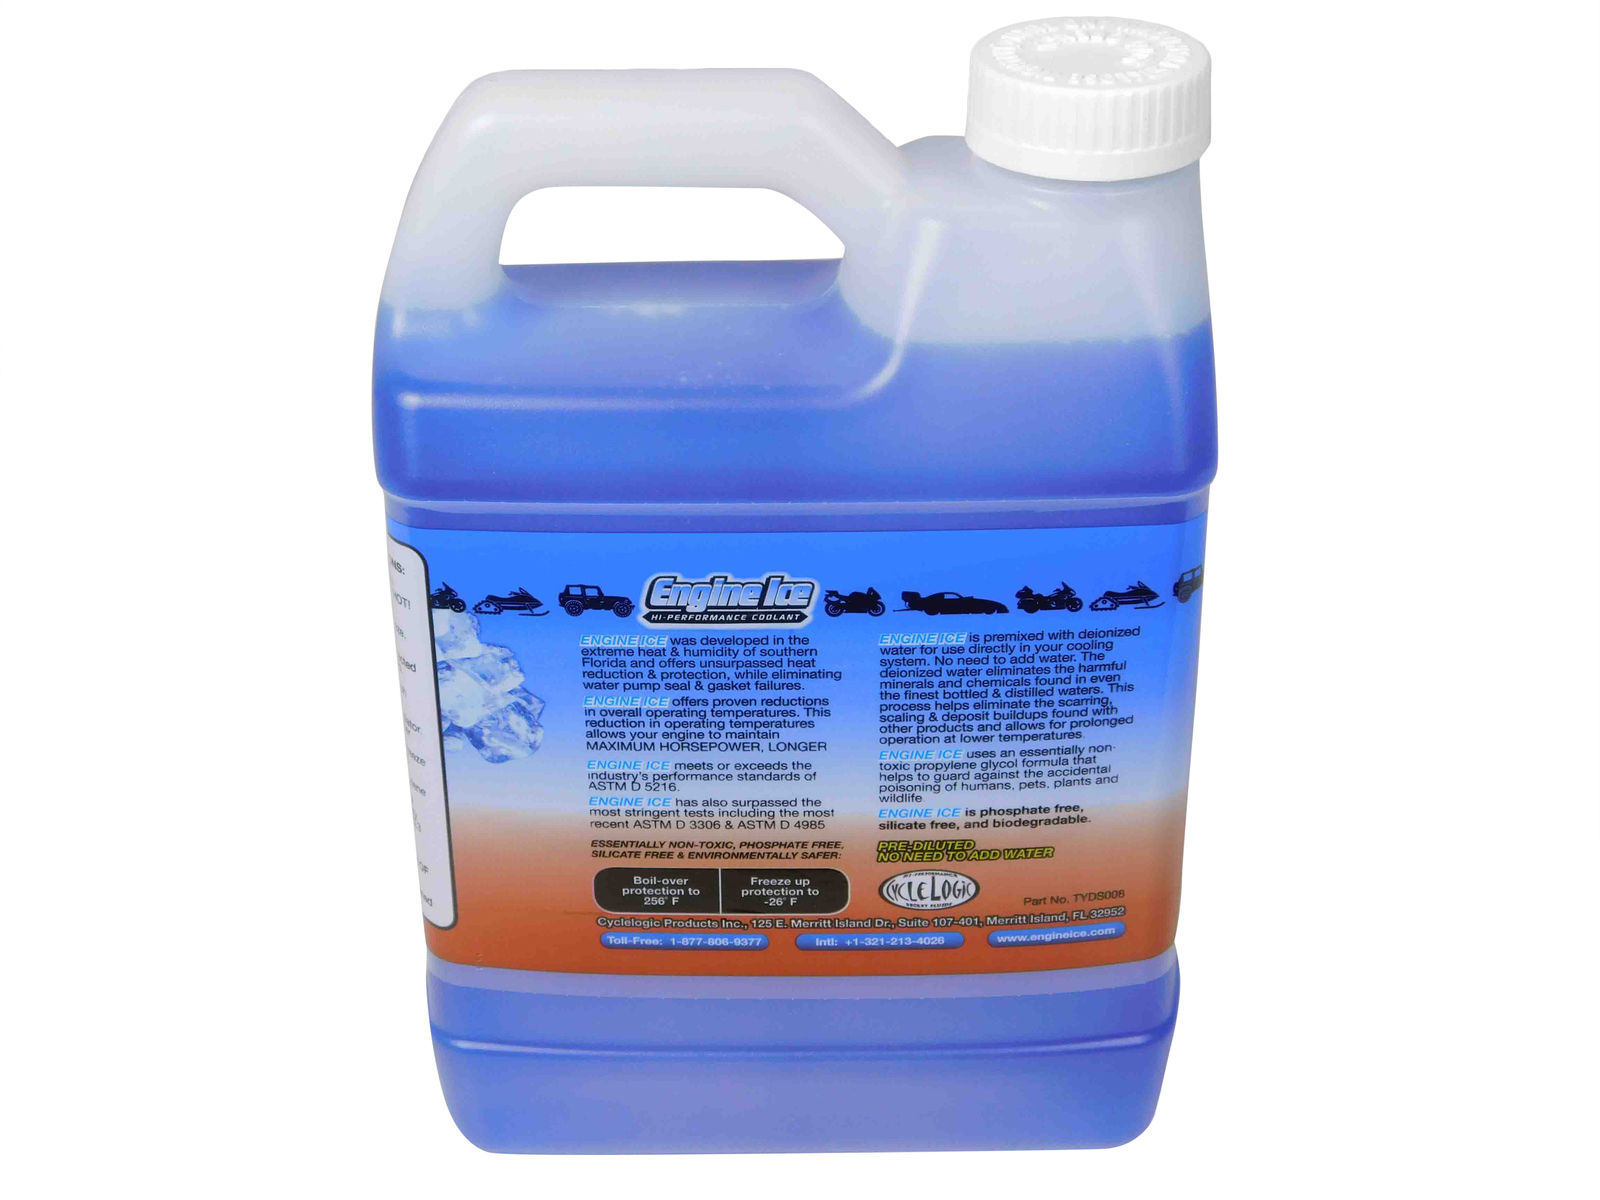 Engine-Ice-TYDS008-03-High-Performance-Coolant-0.5-gallon-4-Pack-image-3